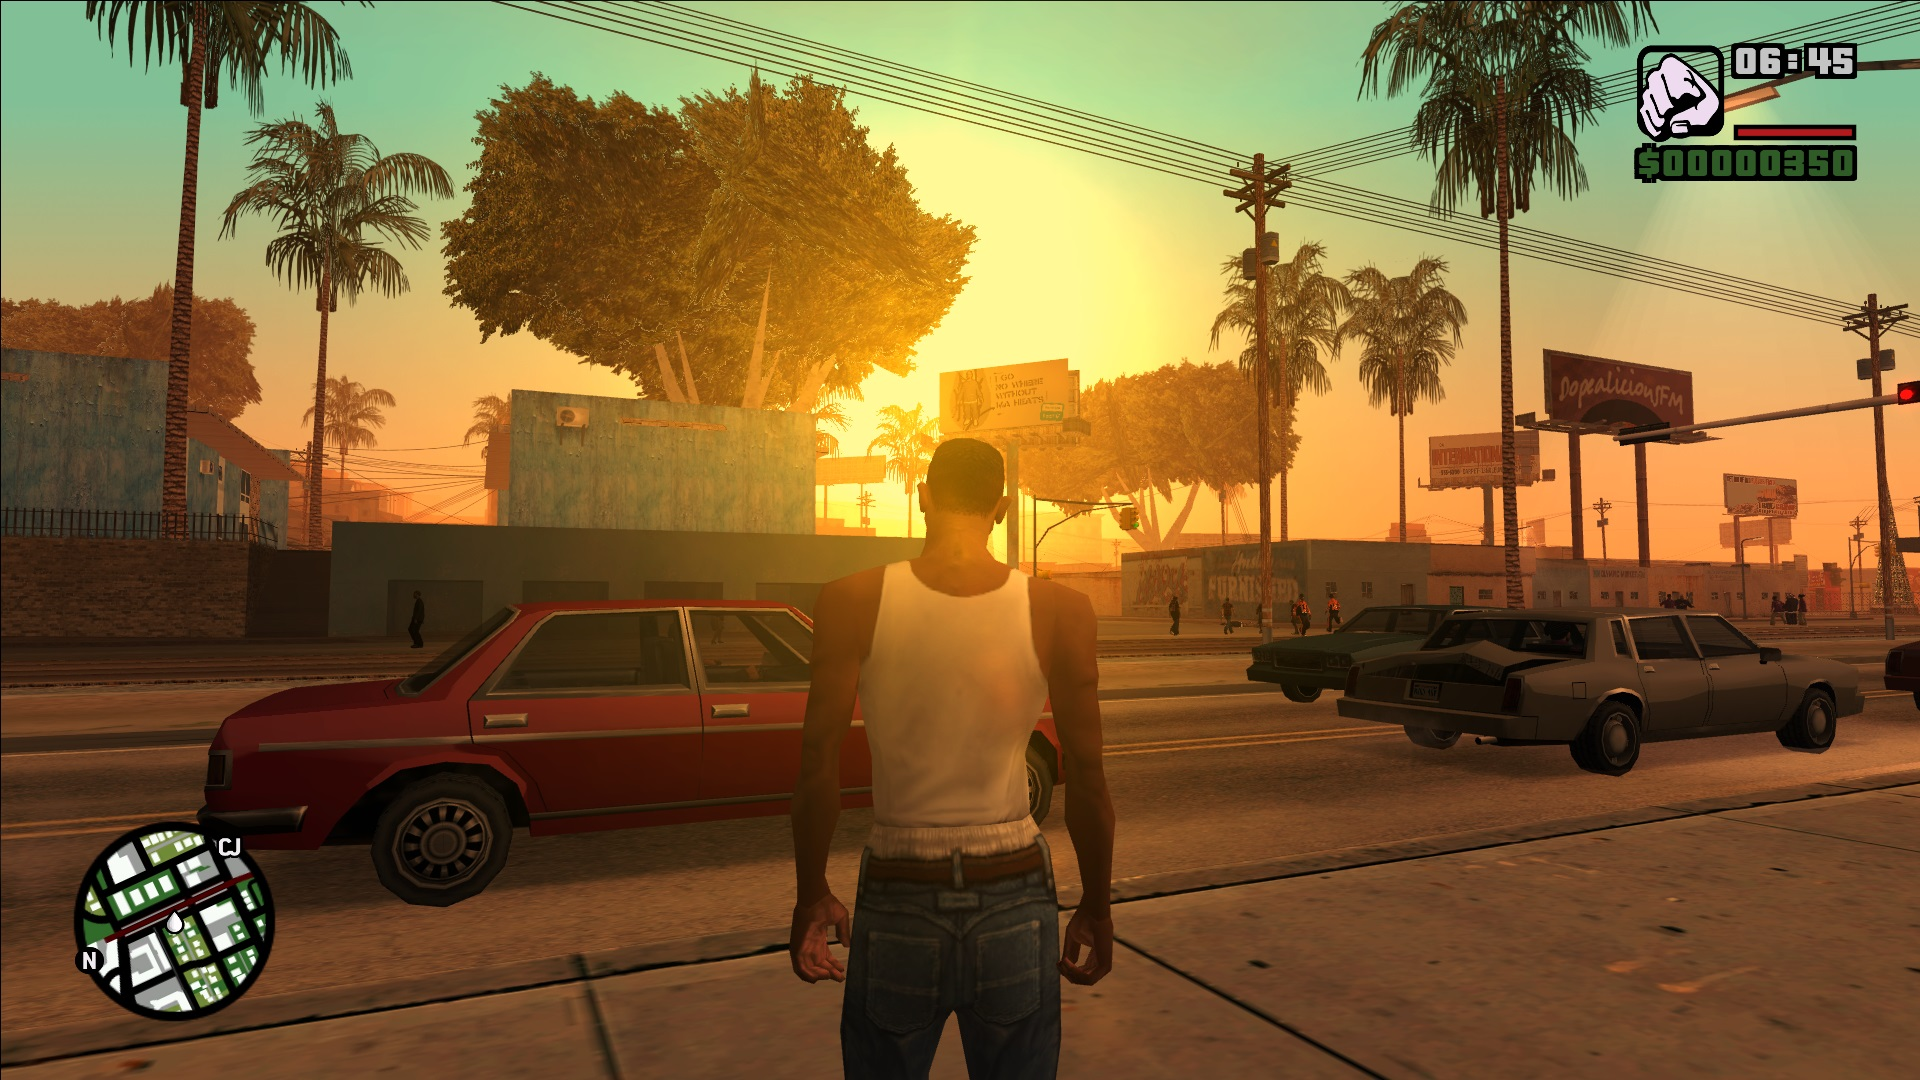 gta san andreas free download for pc windows 7 ultimate